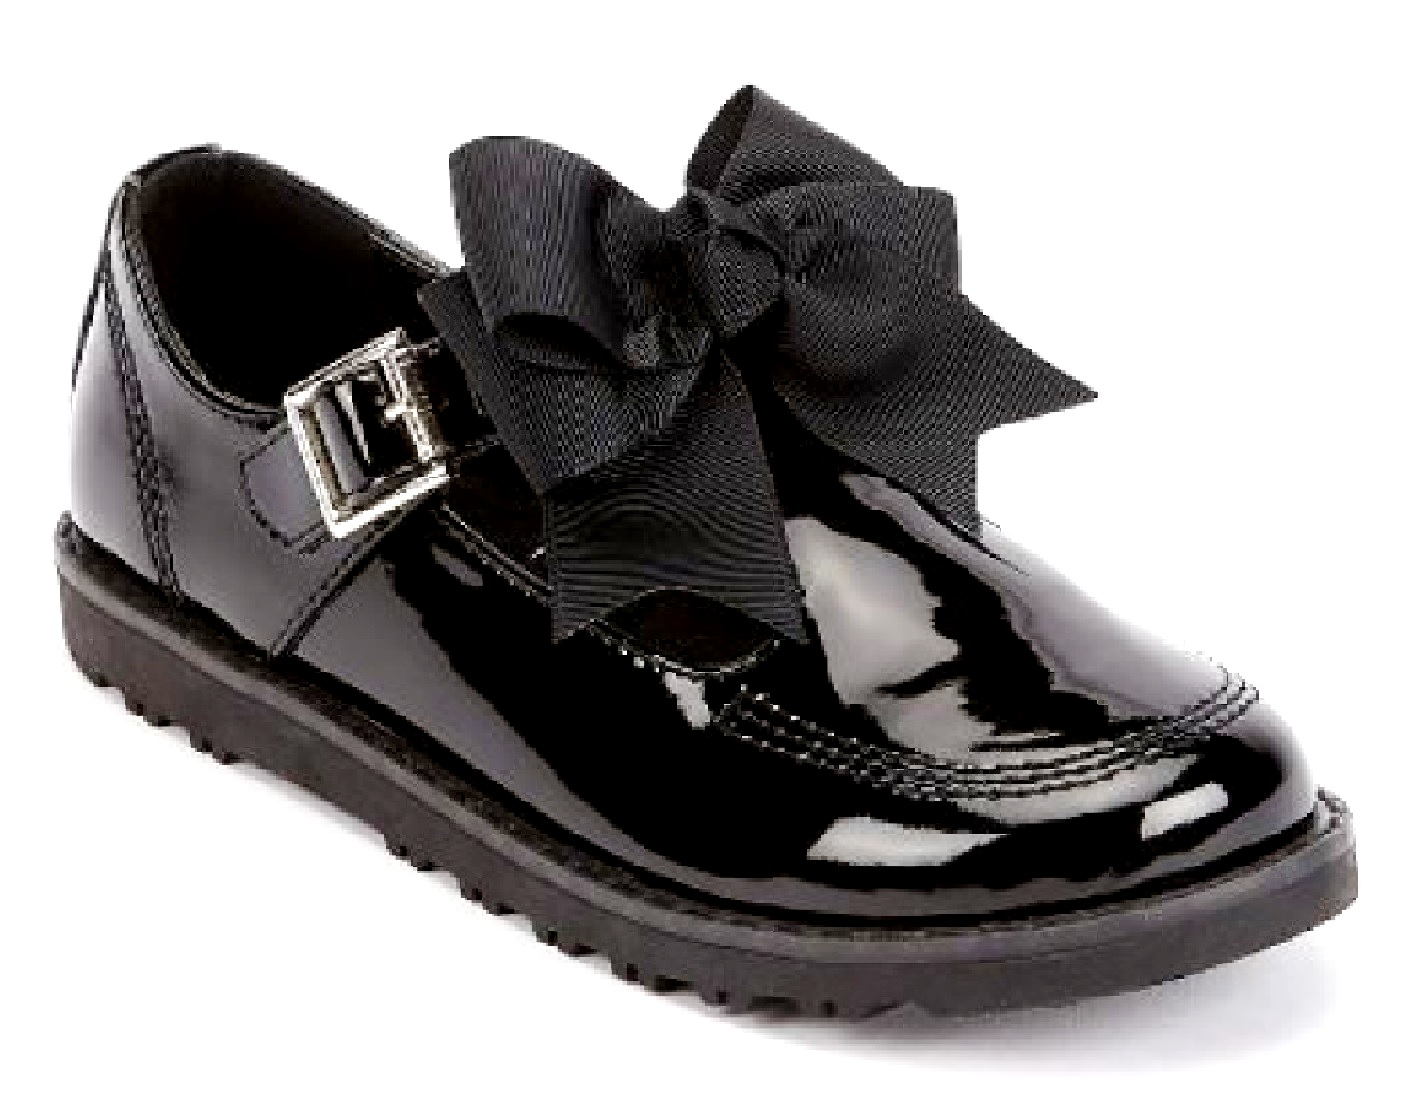 WOMENS-LADIES-FLAT-CREEPER-CHUNKY-SOLE-SCHOOL-WORK-DOLLY-LOAFERS-BOW-SHOES-SIZE thumbnail 2